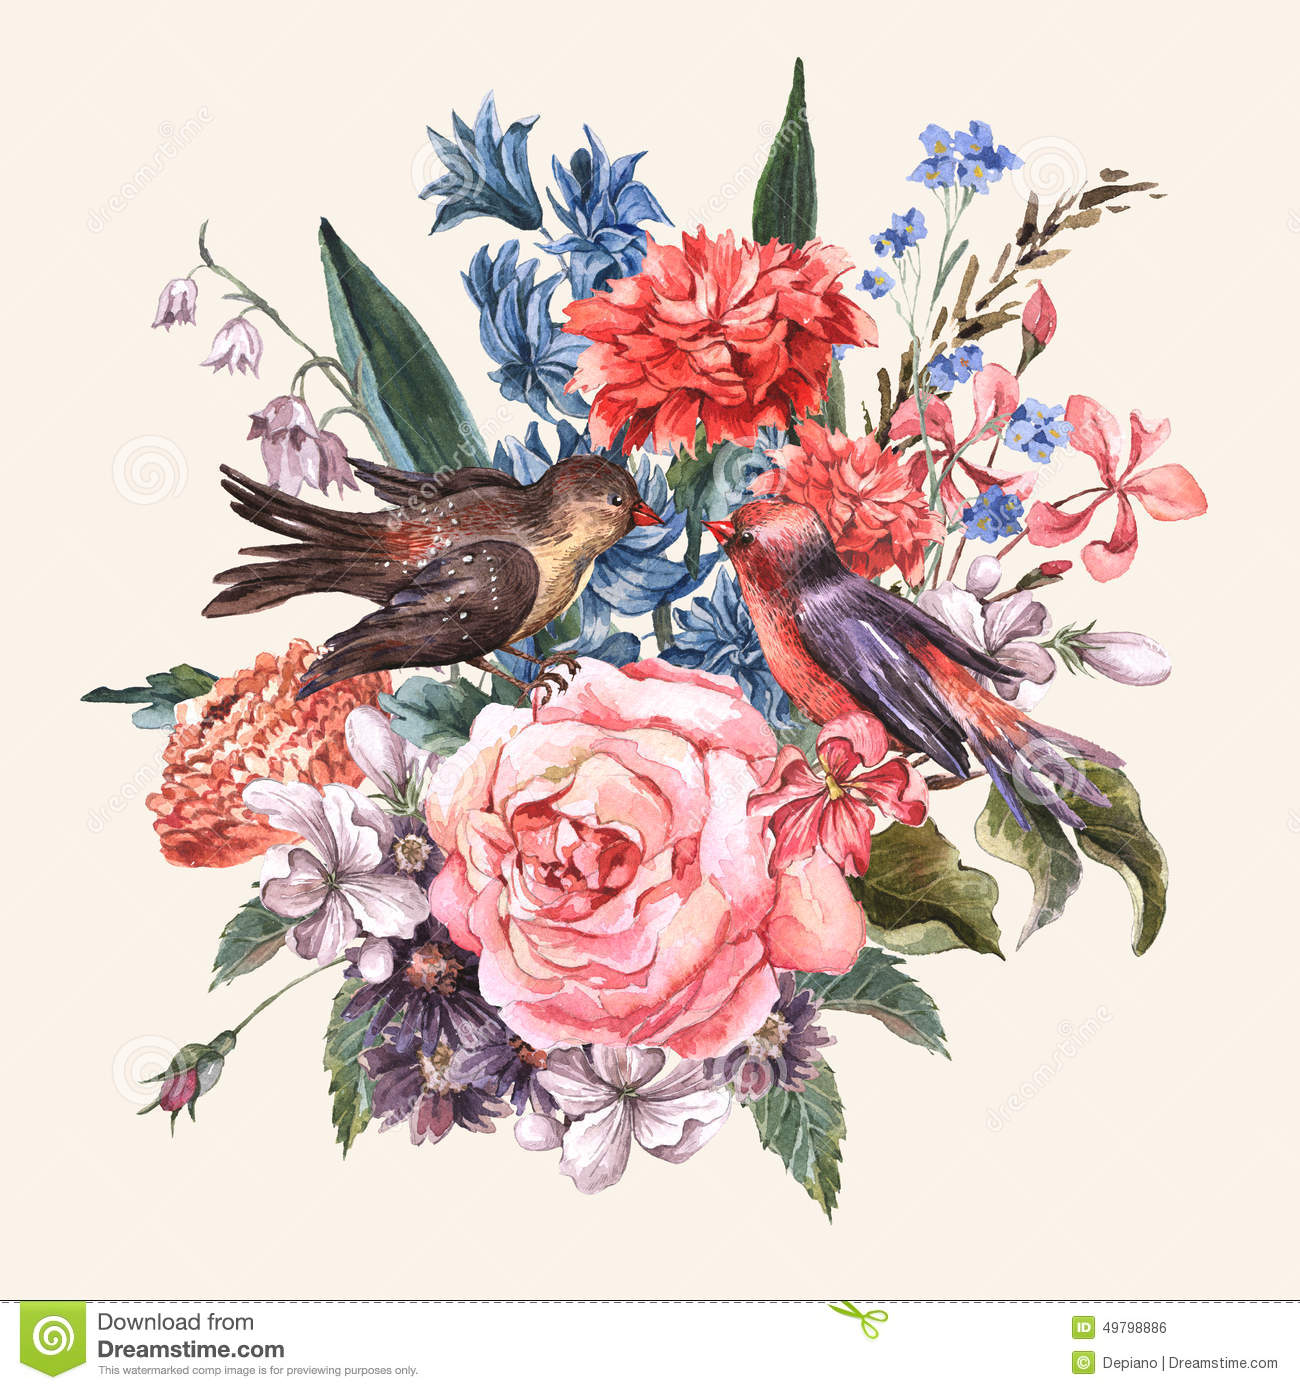 Frame design for wedding invitation vector border in victorian style - Floral Bouquet With Roses Hyacinths Birds Stock